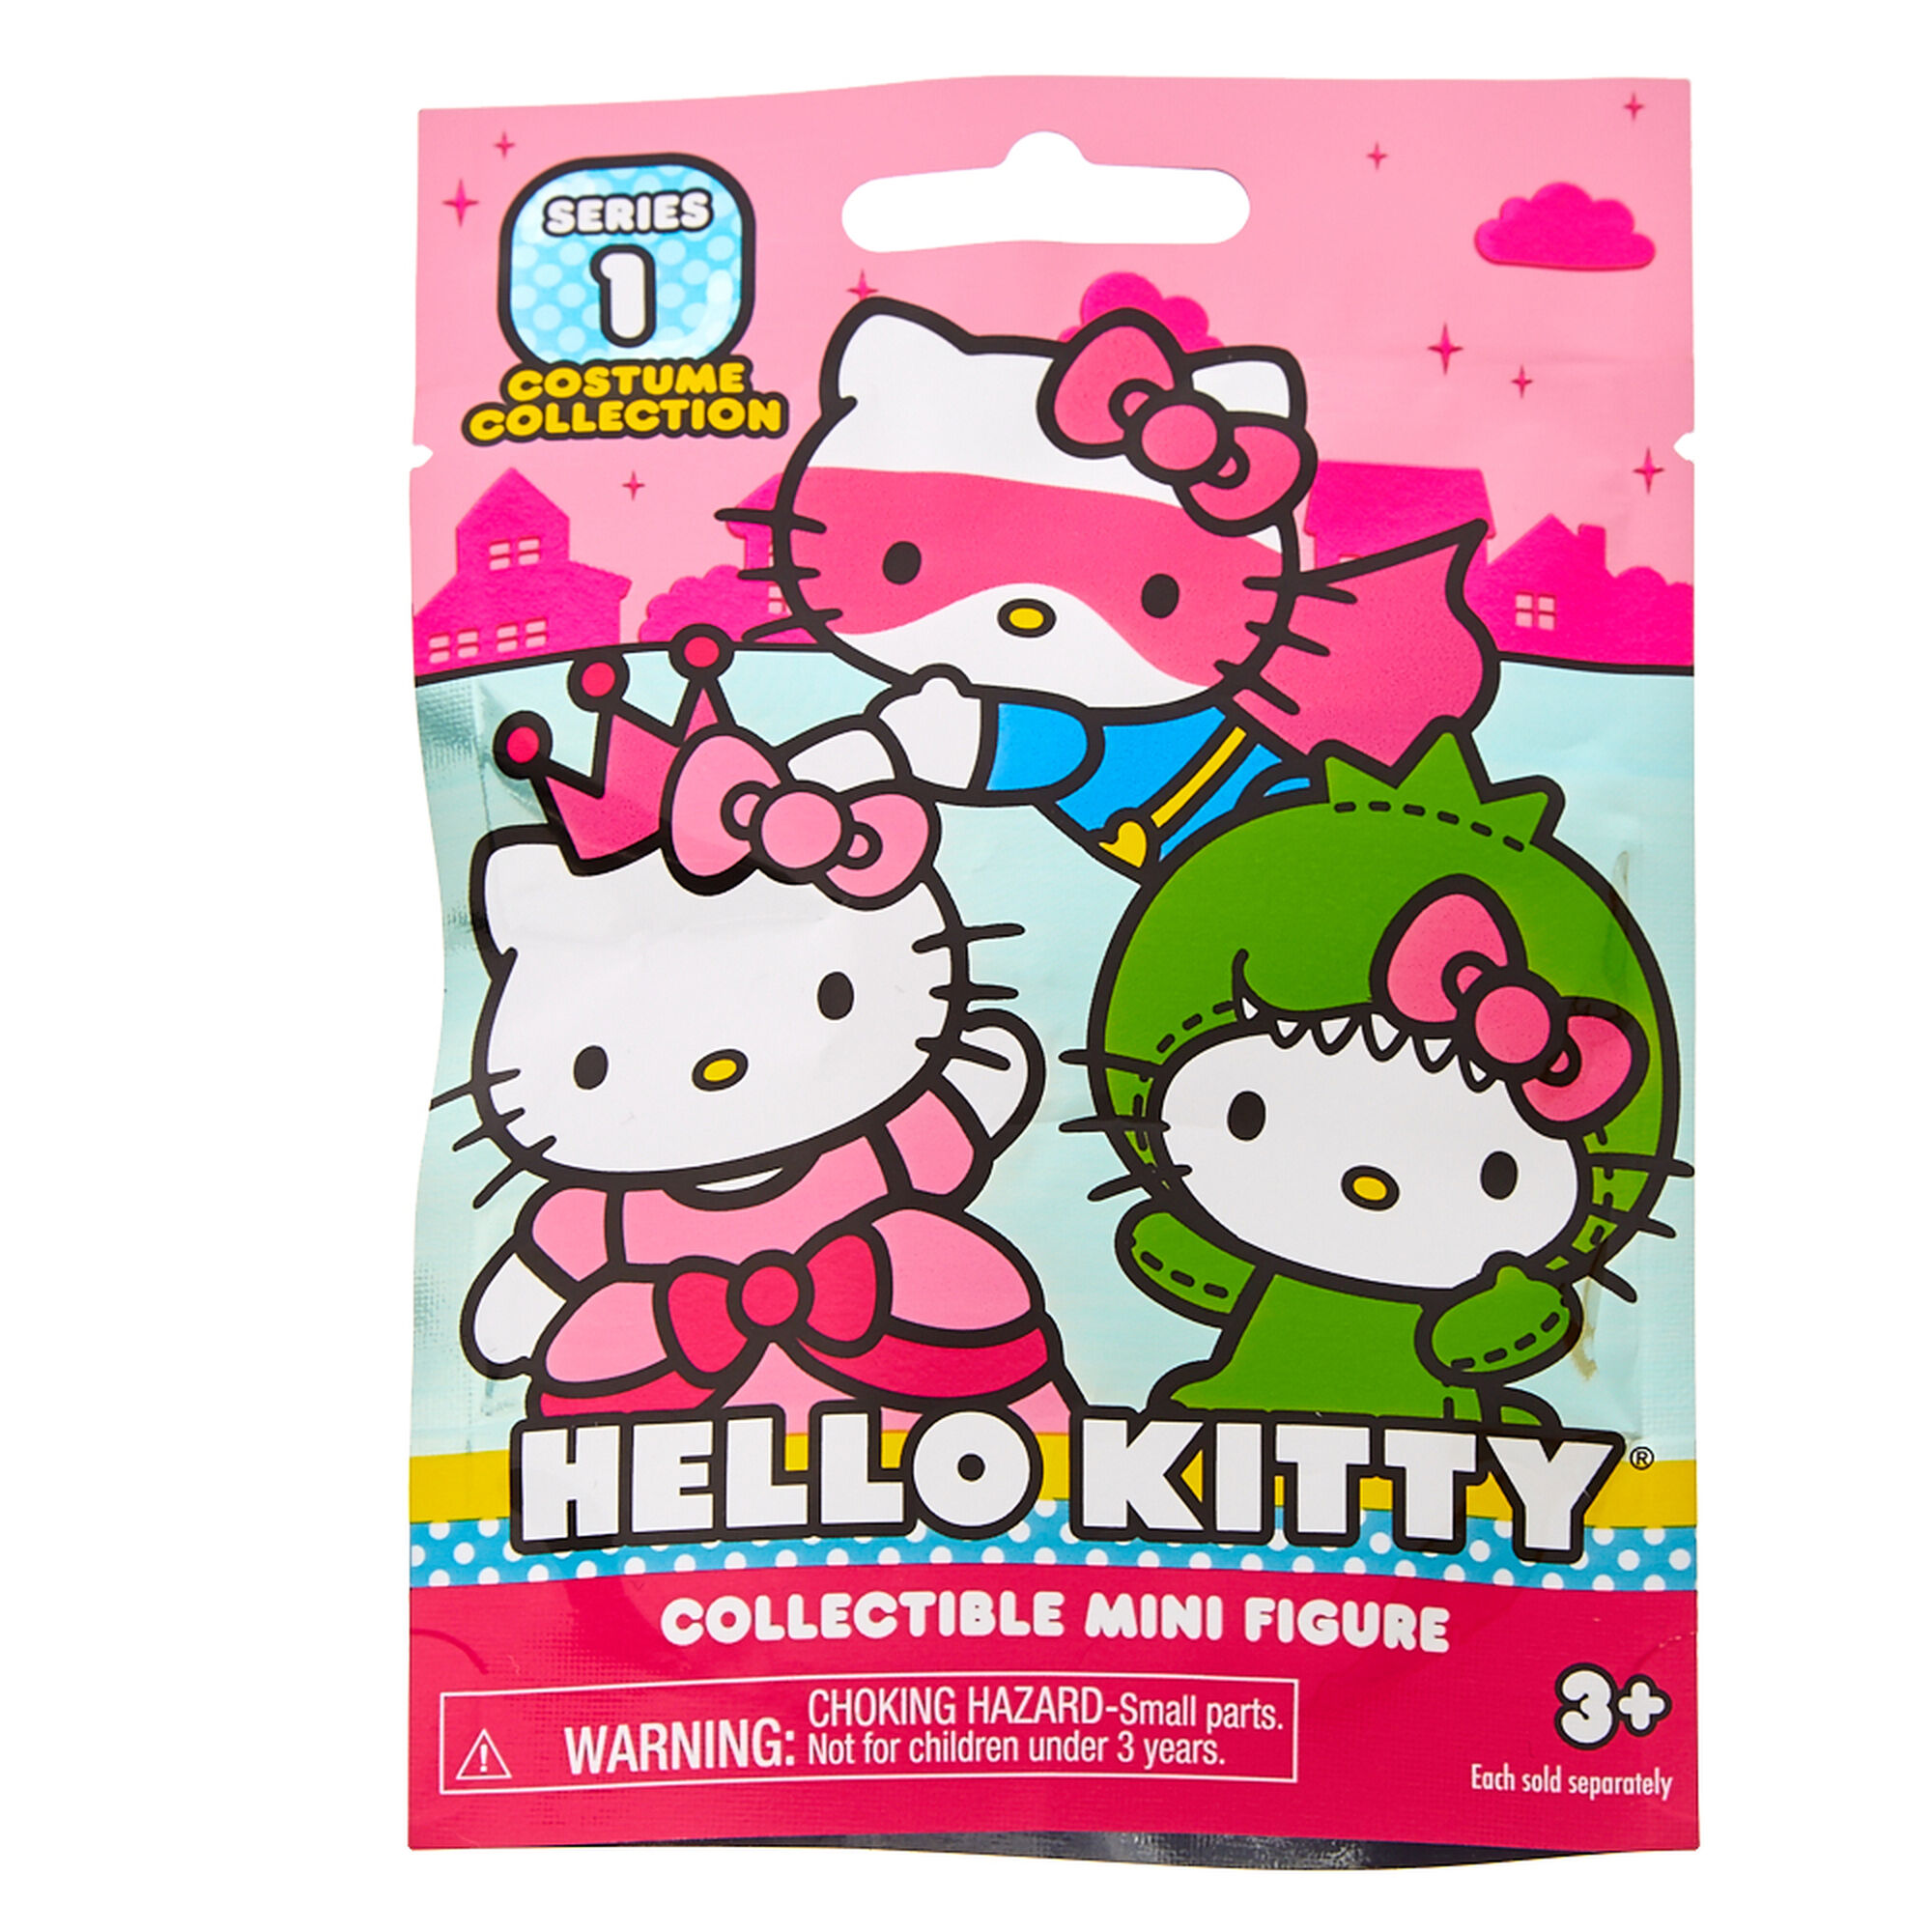 Hello Kitty Series 1 Costume Collection Blind Bag Claire S